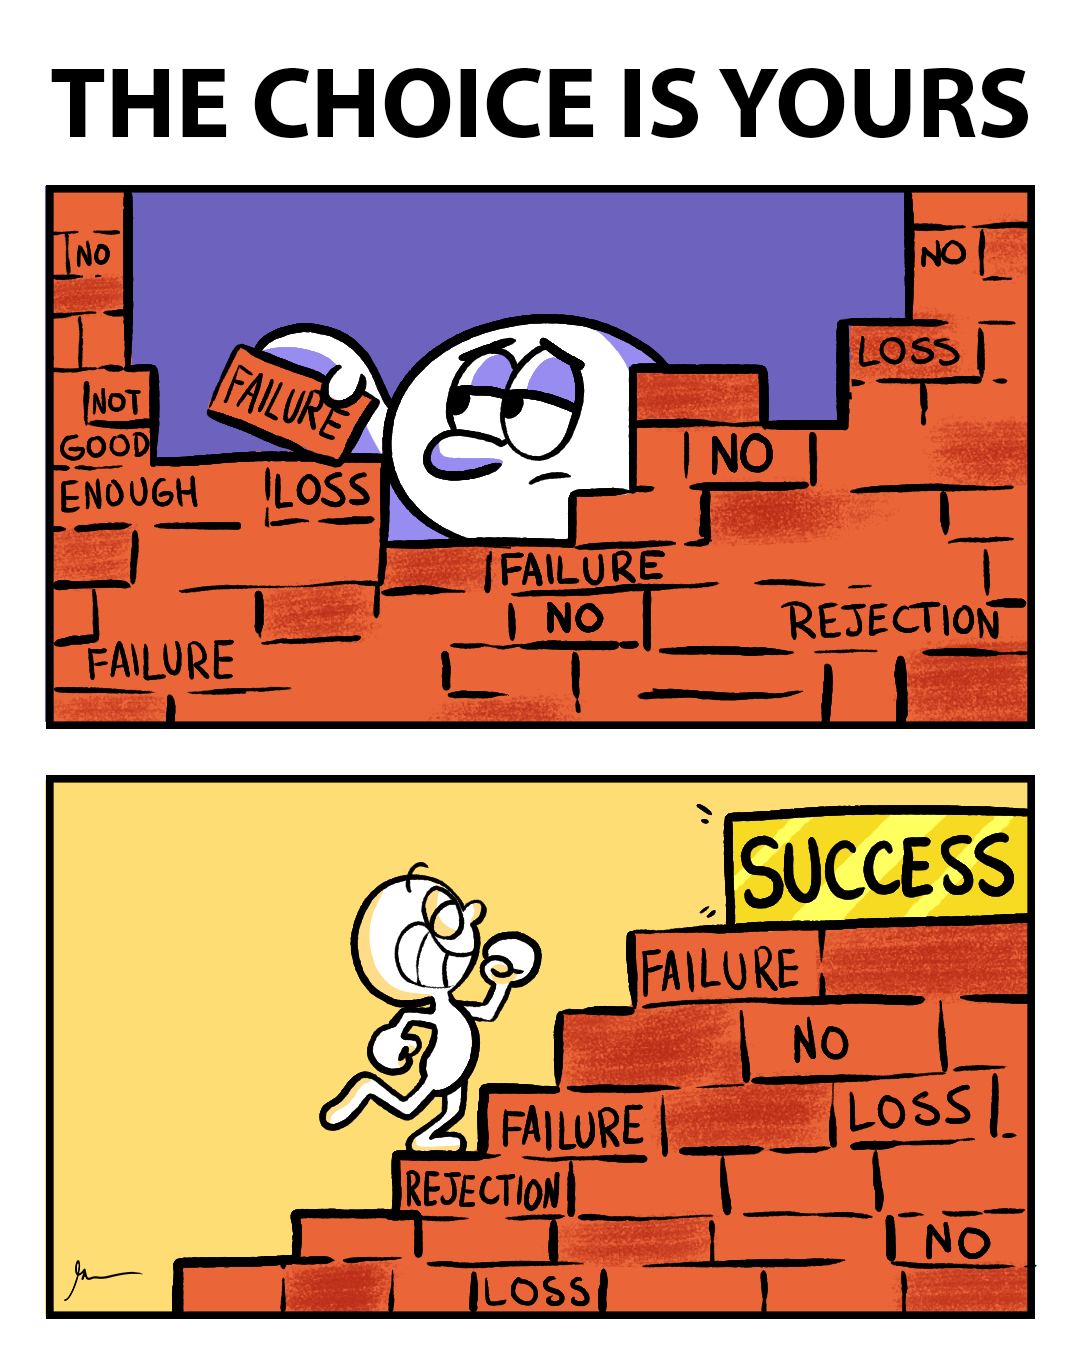 The stepping stones to success [Image]